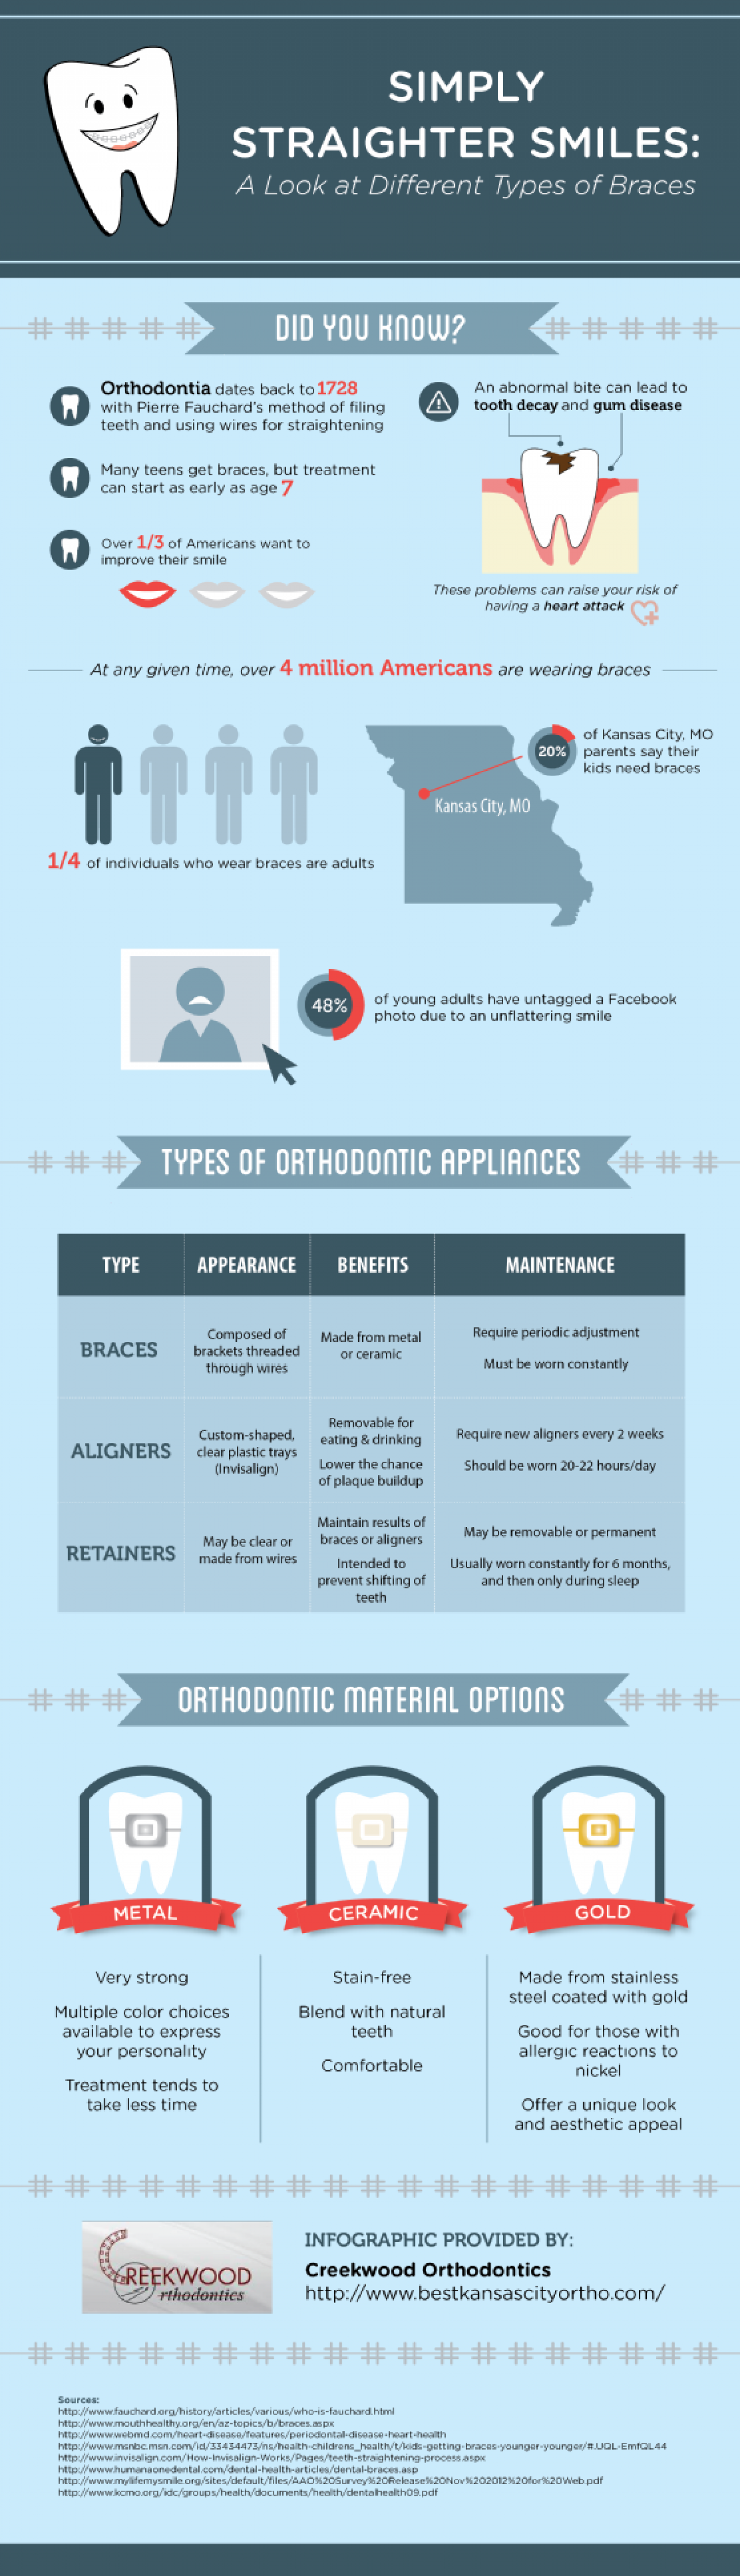 Simply Straighter Smiles: A Look at Different Types of Braces  Infographic